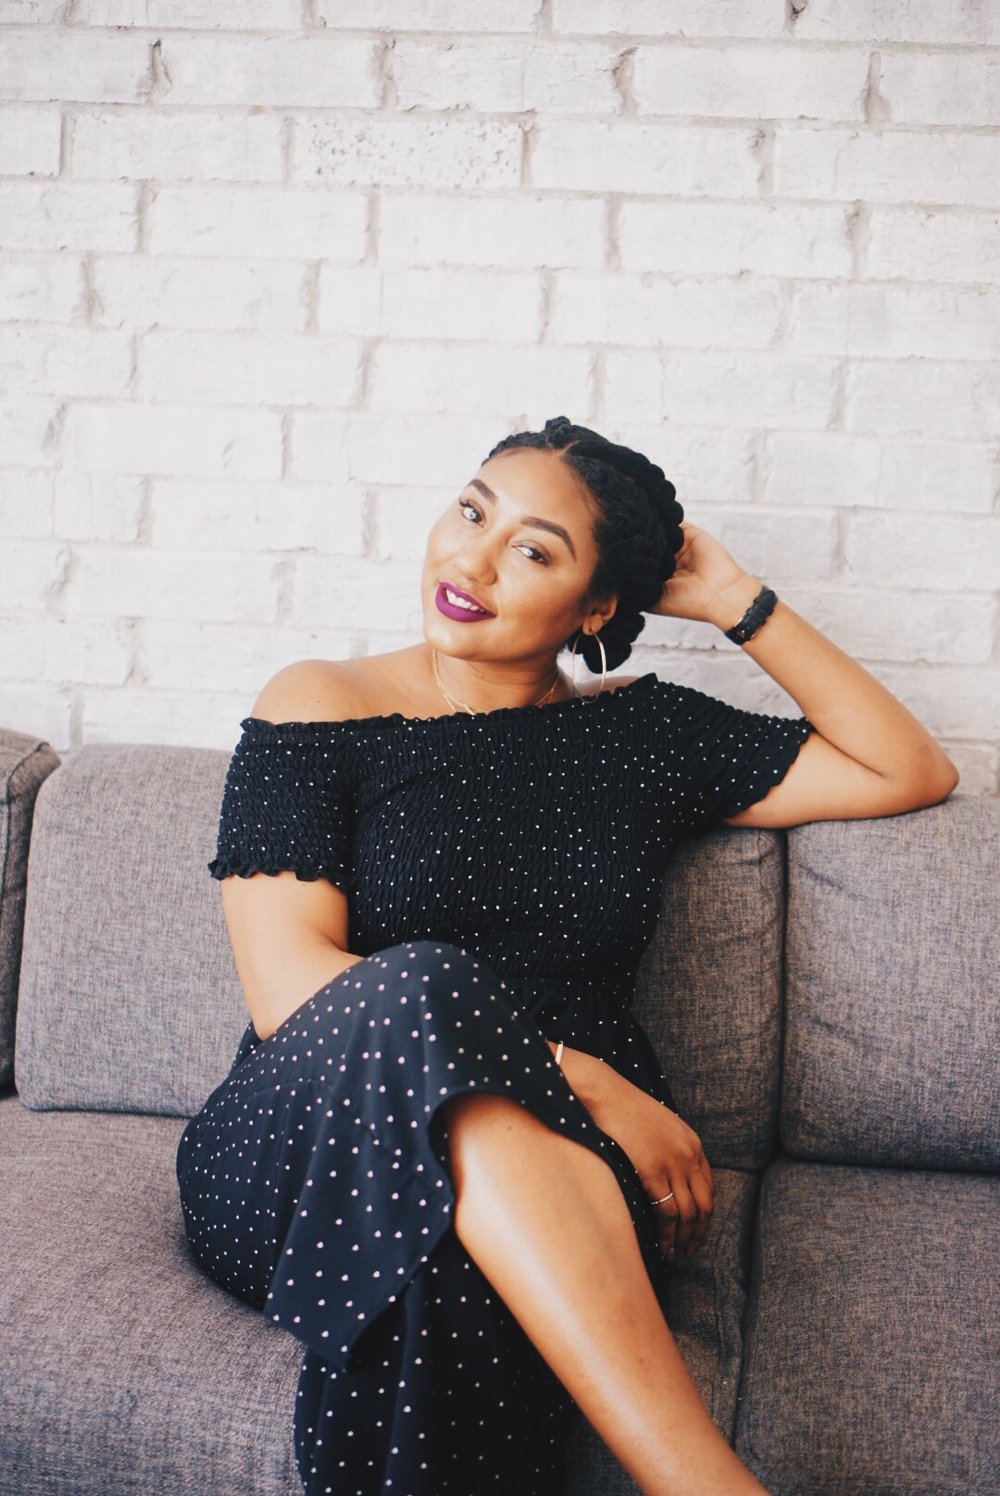 the girl behind the blog - Hi friends! I'm Aquia (uh-key-uh).I'm a marketing and event strategist by day, and a wine-inhaling lifestyle blogger and content creator by night. I'm a dog mom, daughter, sister, and self-proclaimed rockstar aunt. A 20-something living the life in Dallas, TX.  Some call me